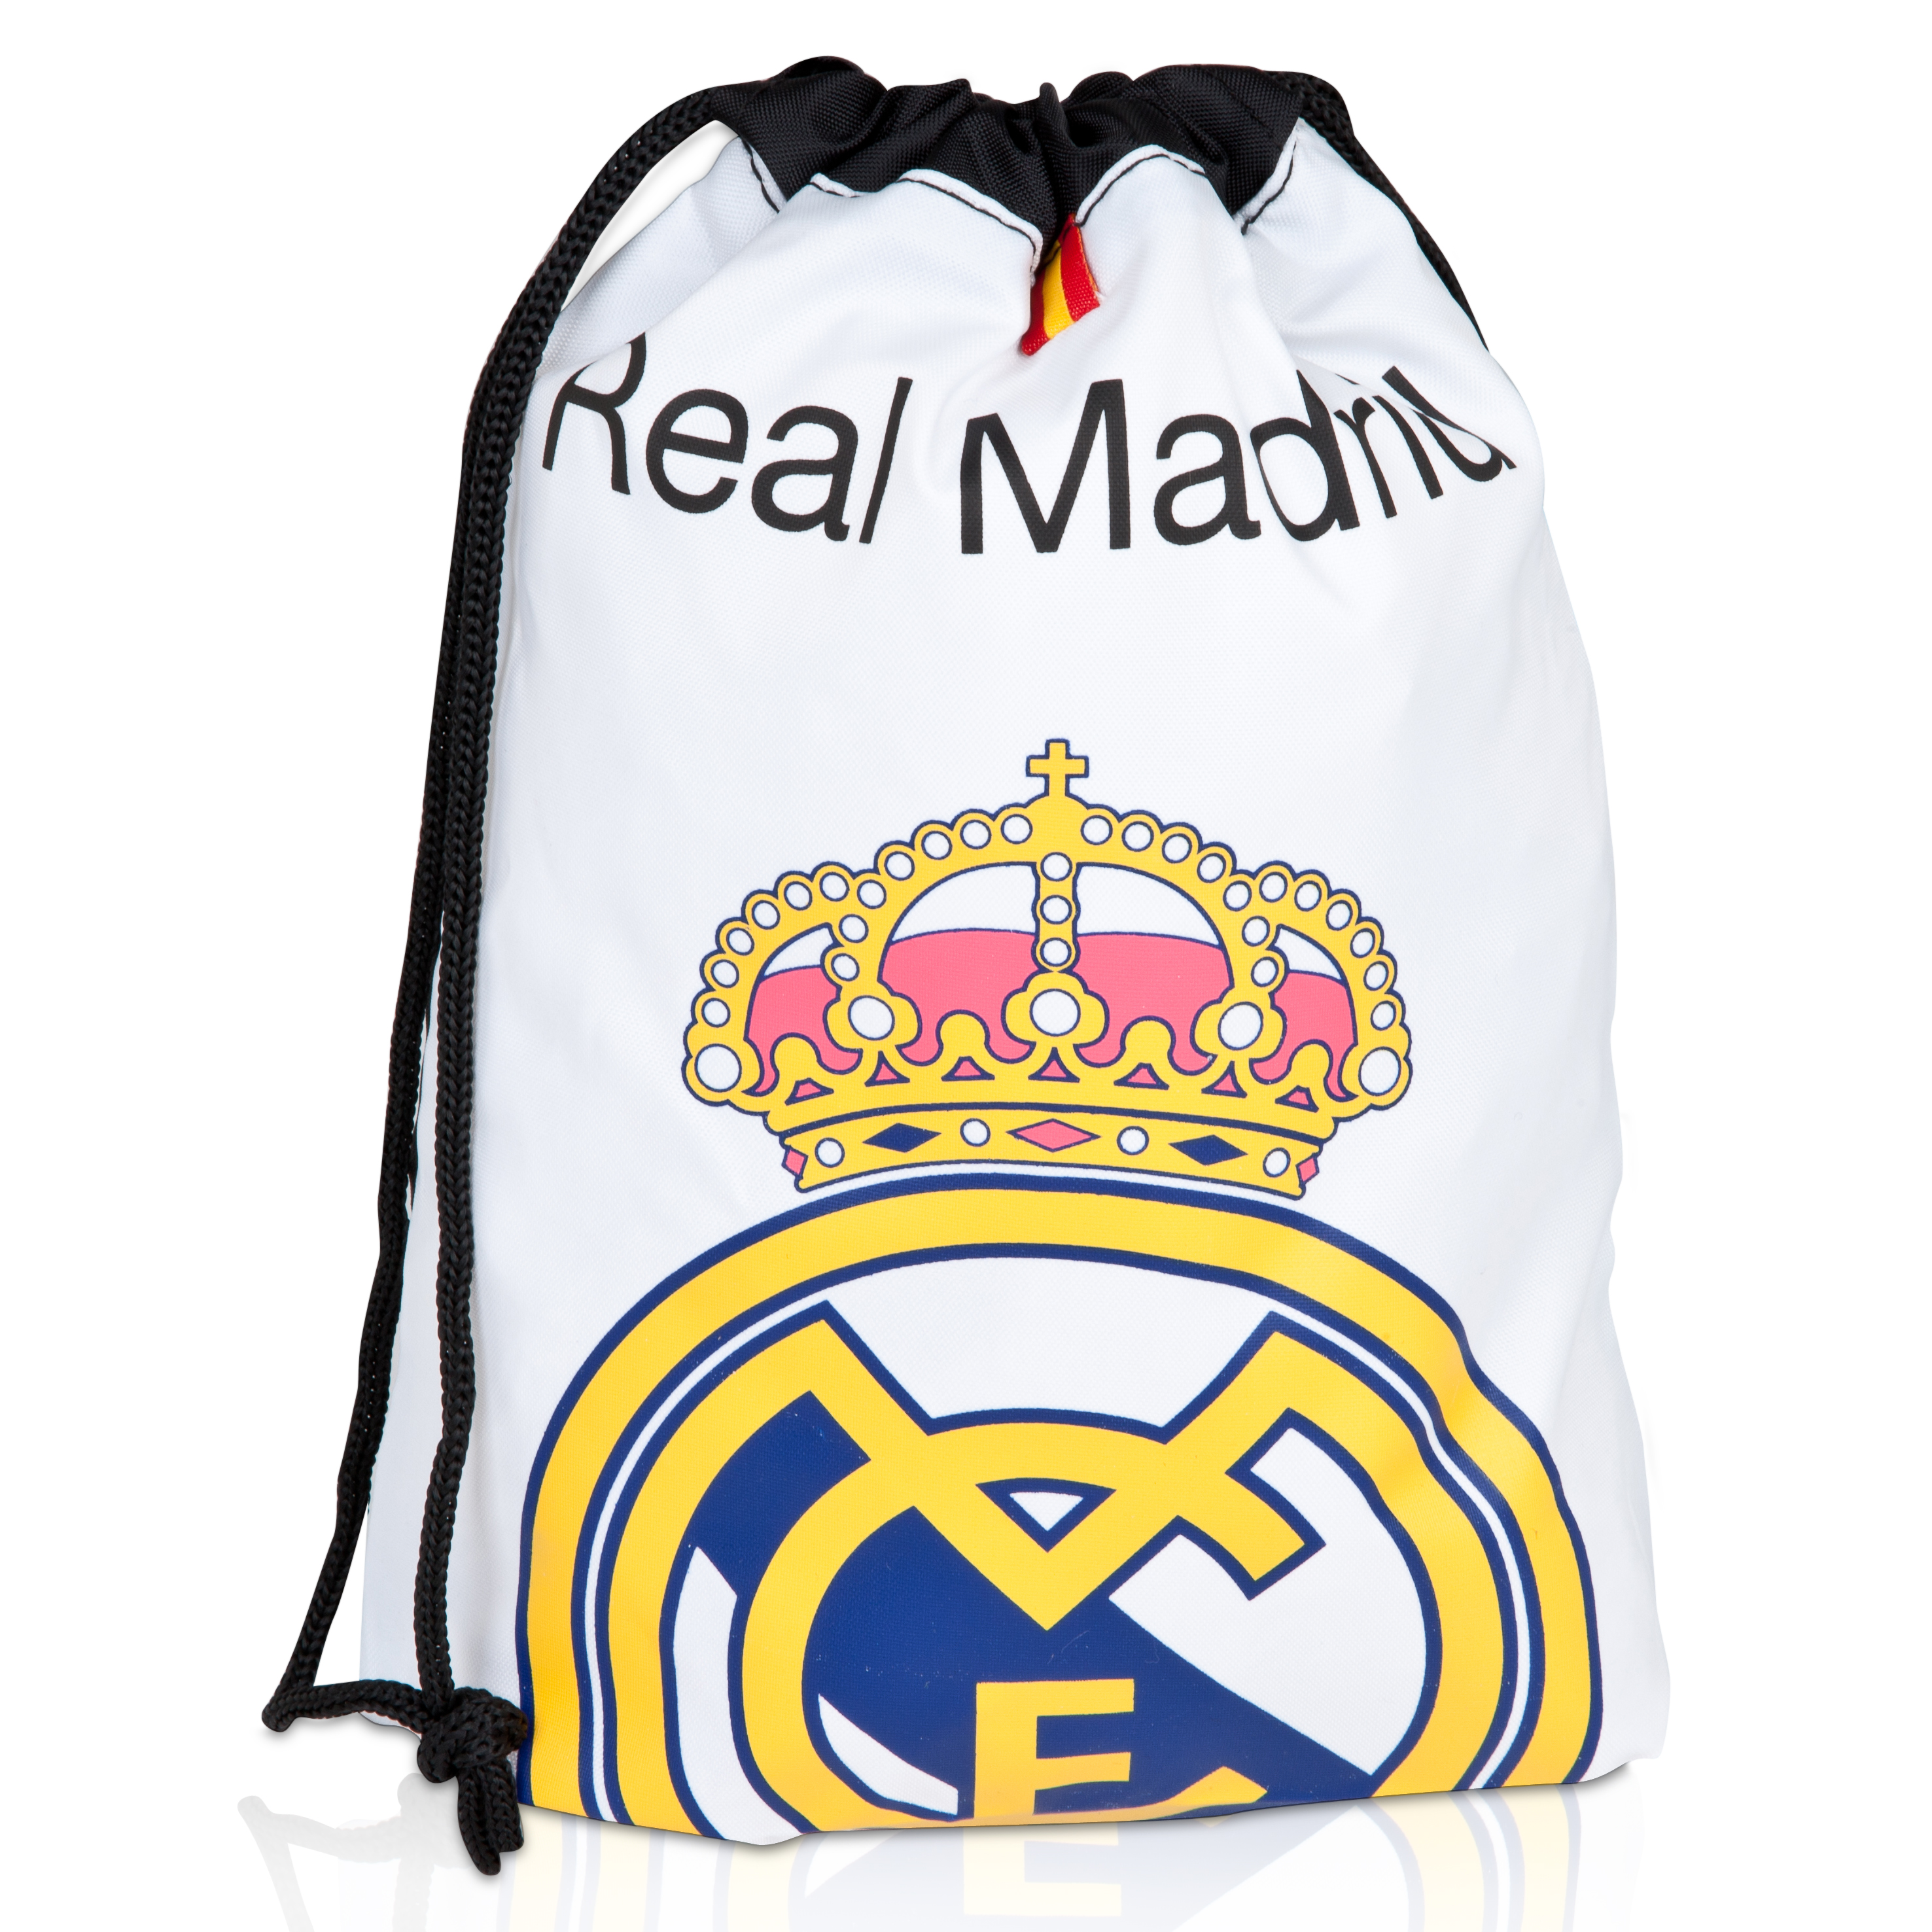 Bolsa fiambrera Real Madrid